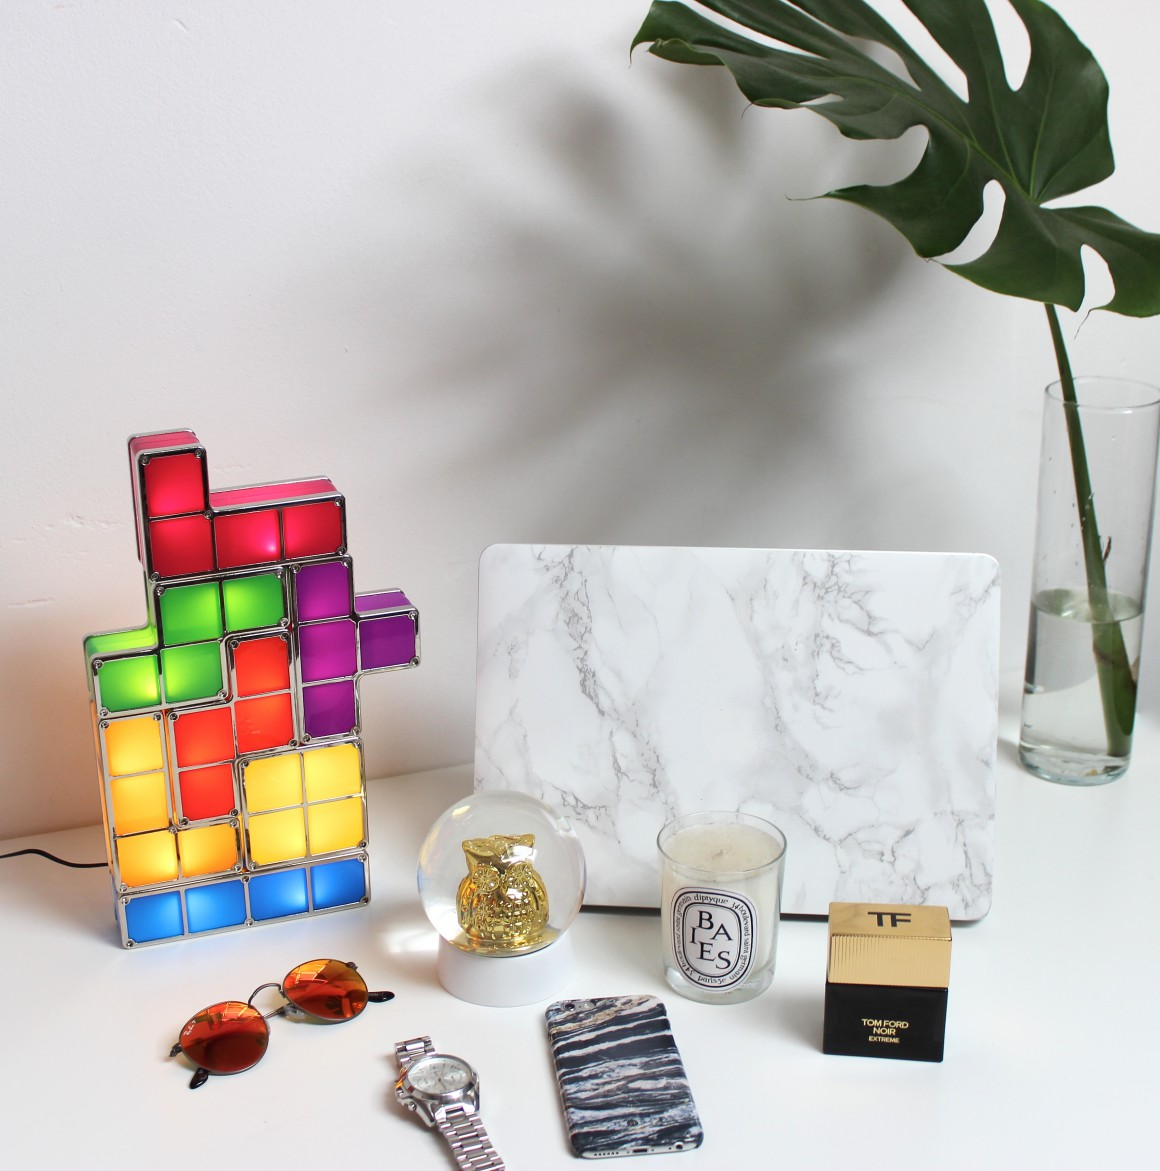 Spicing up my interior with items from Coolgift.nl - JustKVN menswear and lifestyle blog